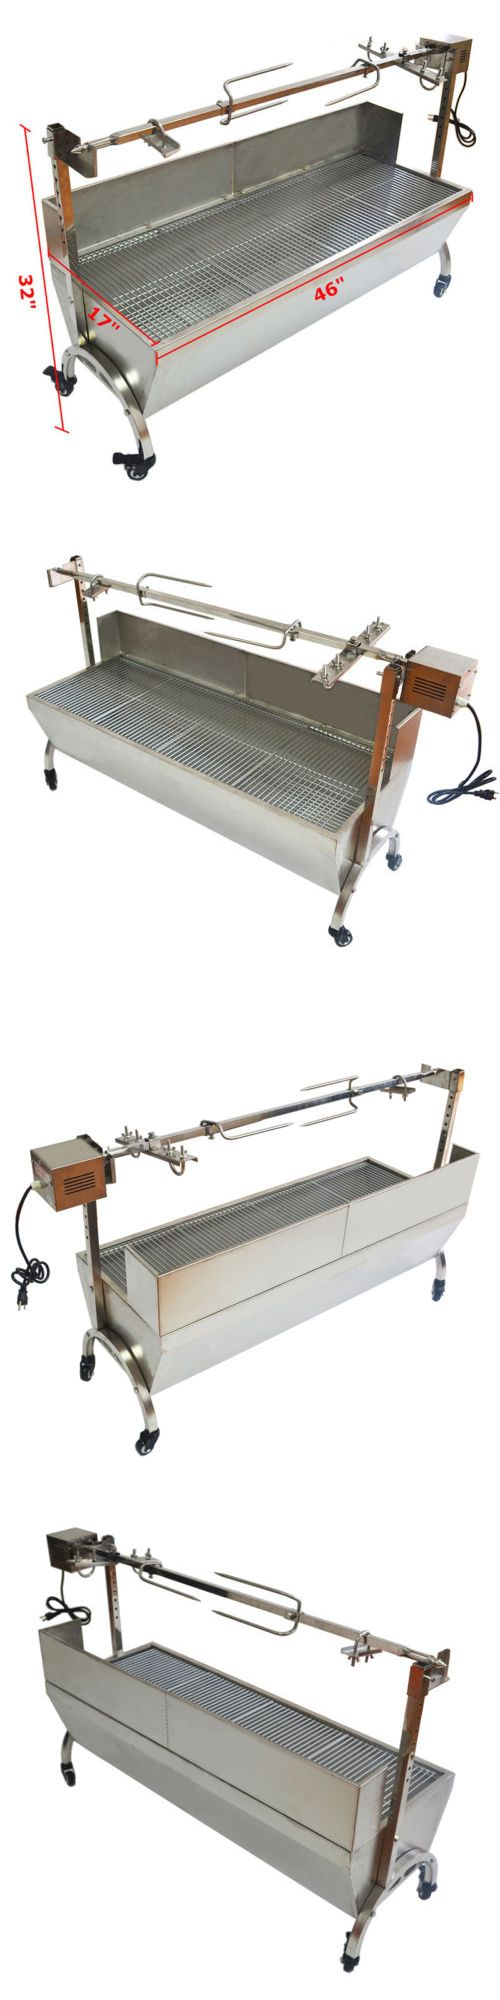 Barbecues Grills and Smokers 151621: 46 Large Stainless Steel Bbq,Pig,Lamb,Goat,Chicken Spit Roaster,Rotisserie Top -> BUY IT NOW ONLY: $389.99 on eBay!